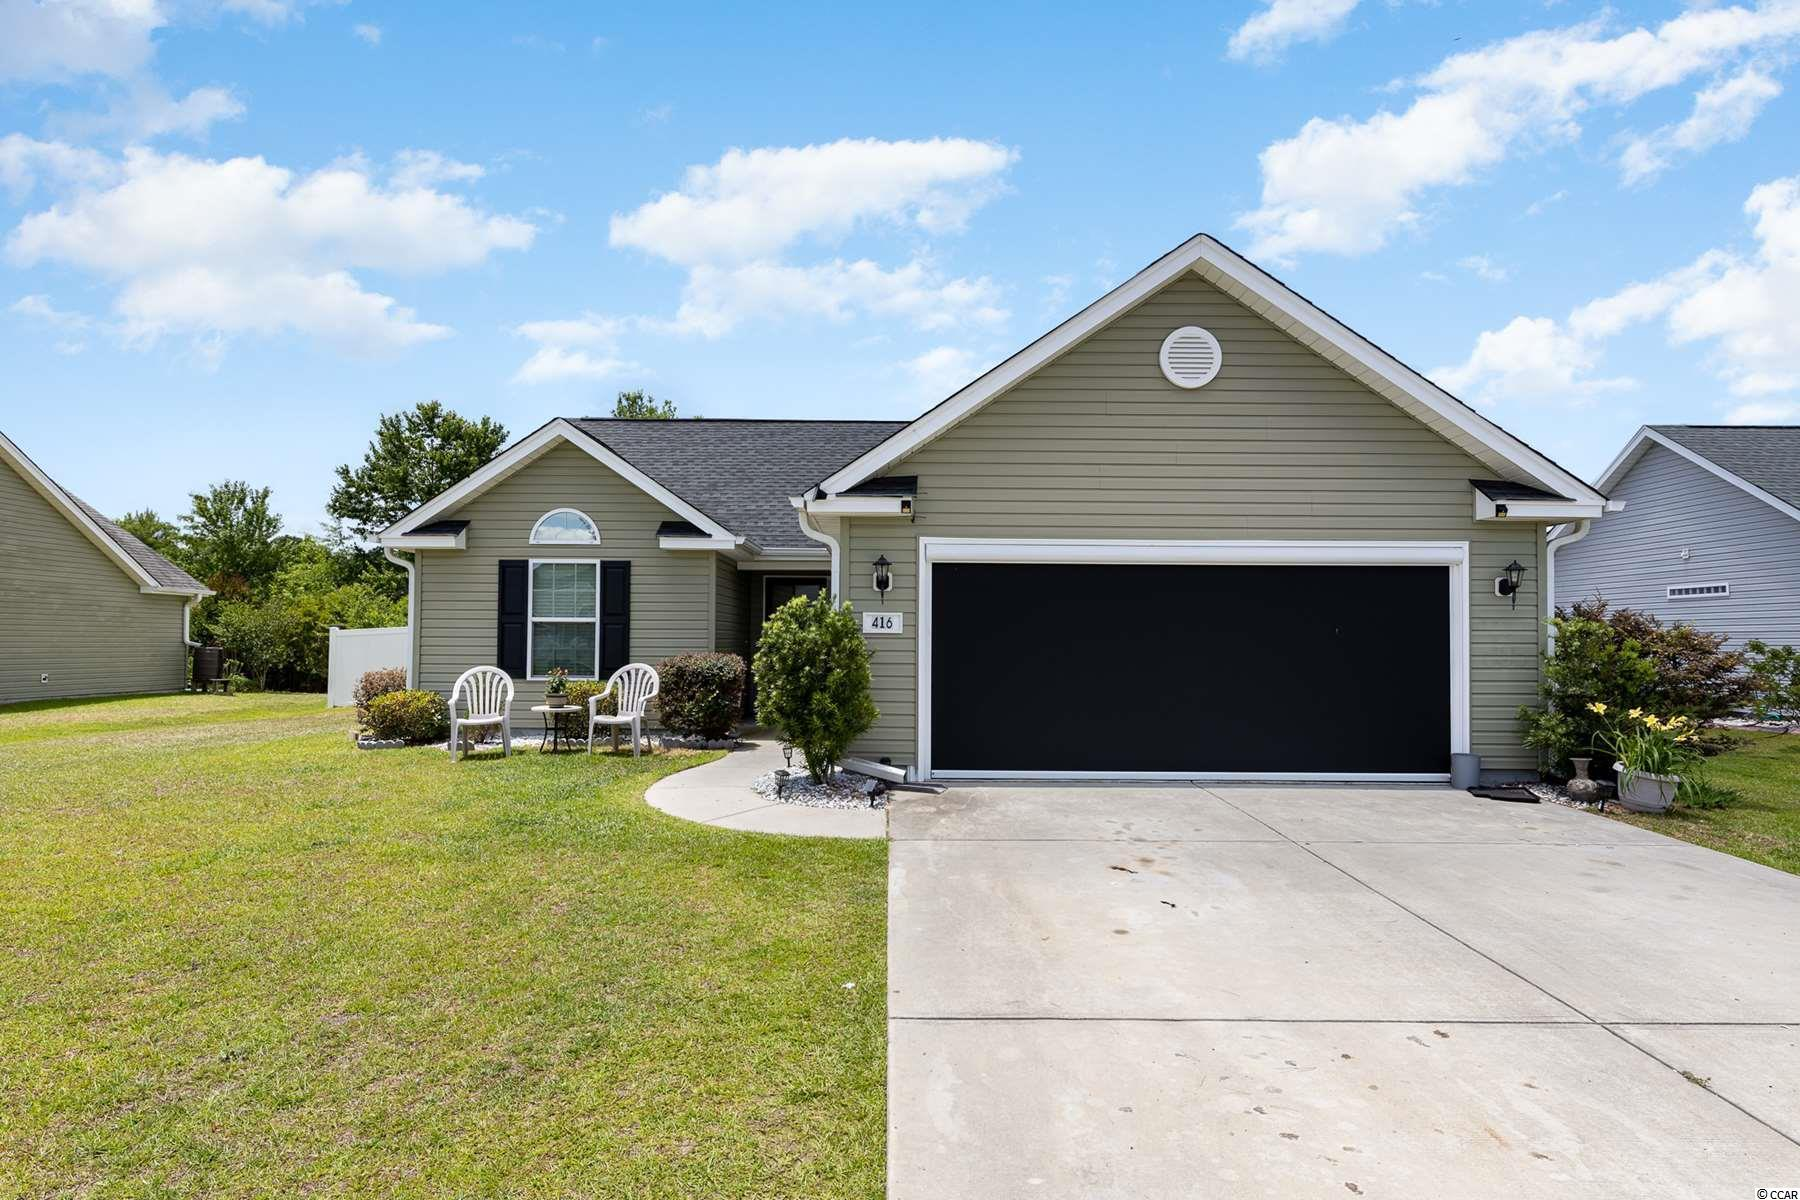 Don't miss your opportunity to own a 3 bedroom, 2 bathroom home located in the community of Rosedale. Located just a short drive from the historic downtown Conway with low HOA fees. This open floor plan home offers tall vaulted ceilings in the main living, kitchen and dining areas. The kitchen is equipped with upgraded appliances, a breakfast bar and plenty of cabinets for storage.  The master suite features tray ceilings with a ceiling fan, a walk-in closet and an ensuite bathroom that includes an oversize whirlpool tub. Enjoy a morning coffee in your Carolina room, and evening swim in your private above ground pool with a large built around deck in your fenced in backyard. Rosedale is perfectly situated close to schools, shopping, dining, golf, and all of the Grand Strand's famous entertainment attractions, and just a short 30 minute drive away from the beach! You won't want to miss this. Schedule your showing today!